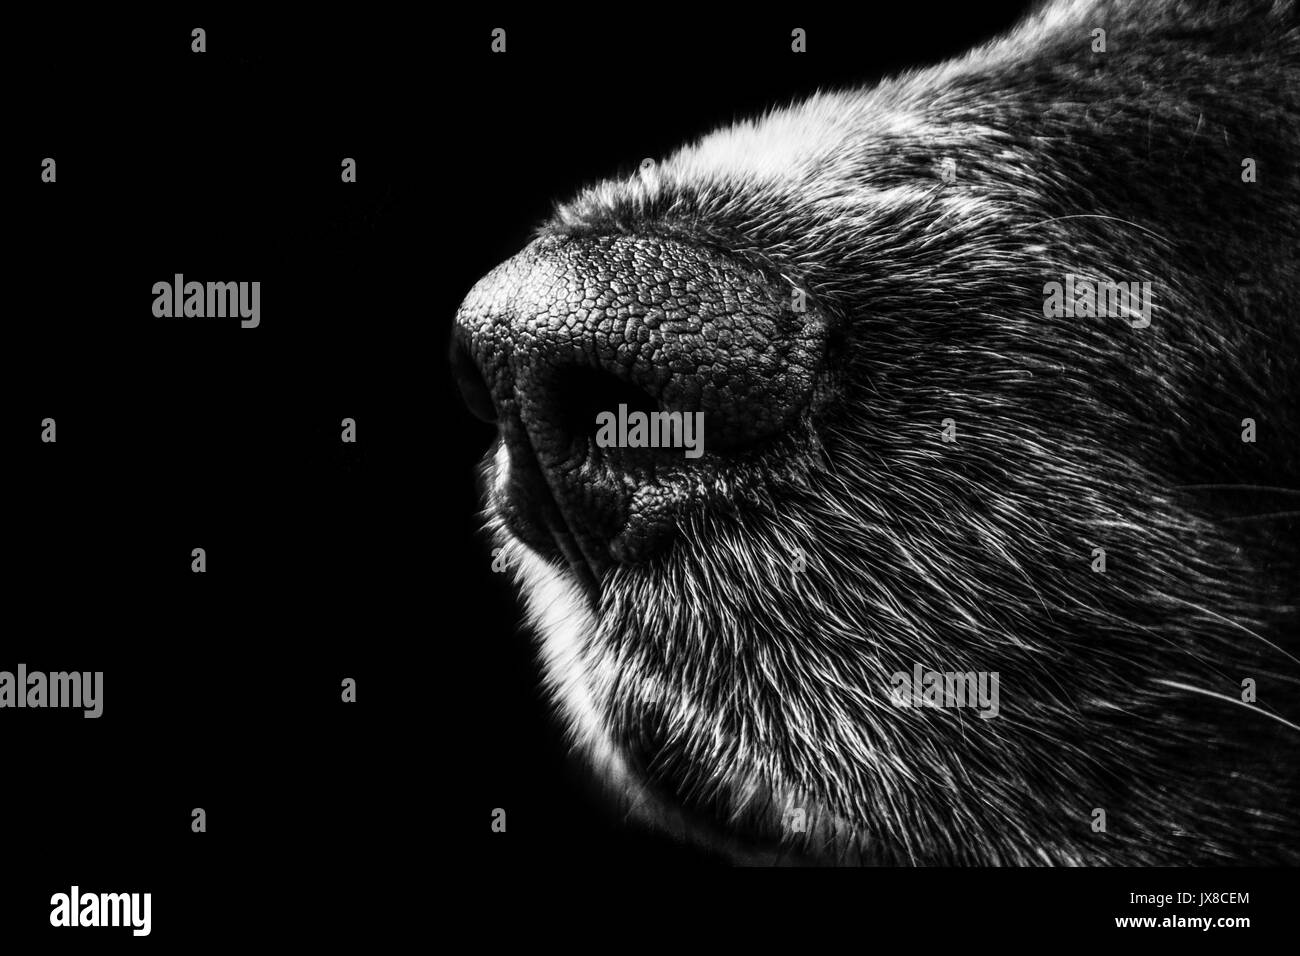 Dogs wet nose in black and white - Stock Image